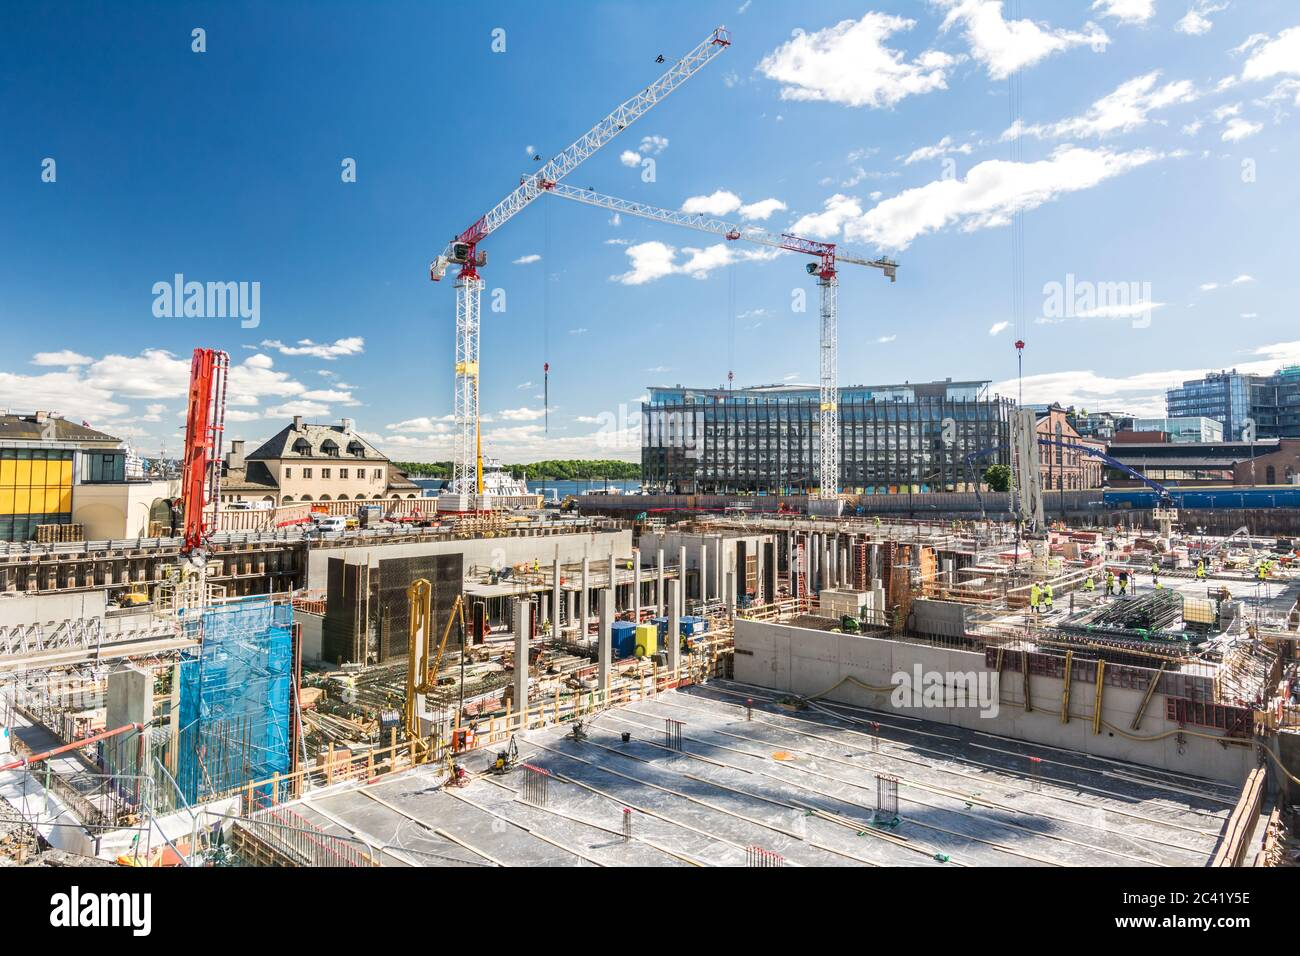 Horizontal shot of large construction site with foundations and cranes Stock Photo